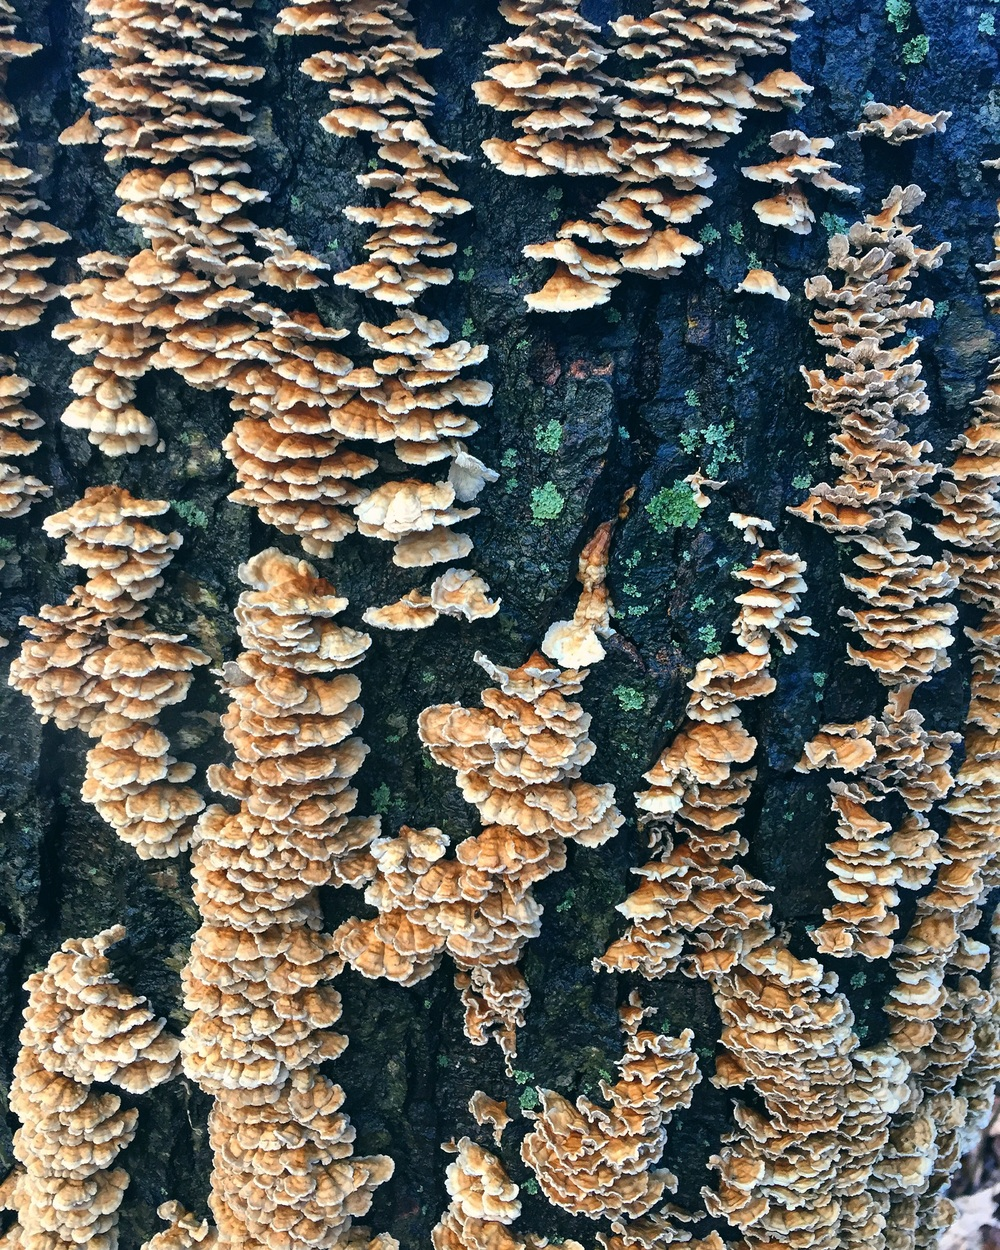 Turkey Tails// Bloomsbury, New Jersey